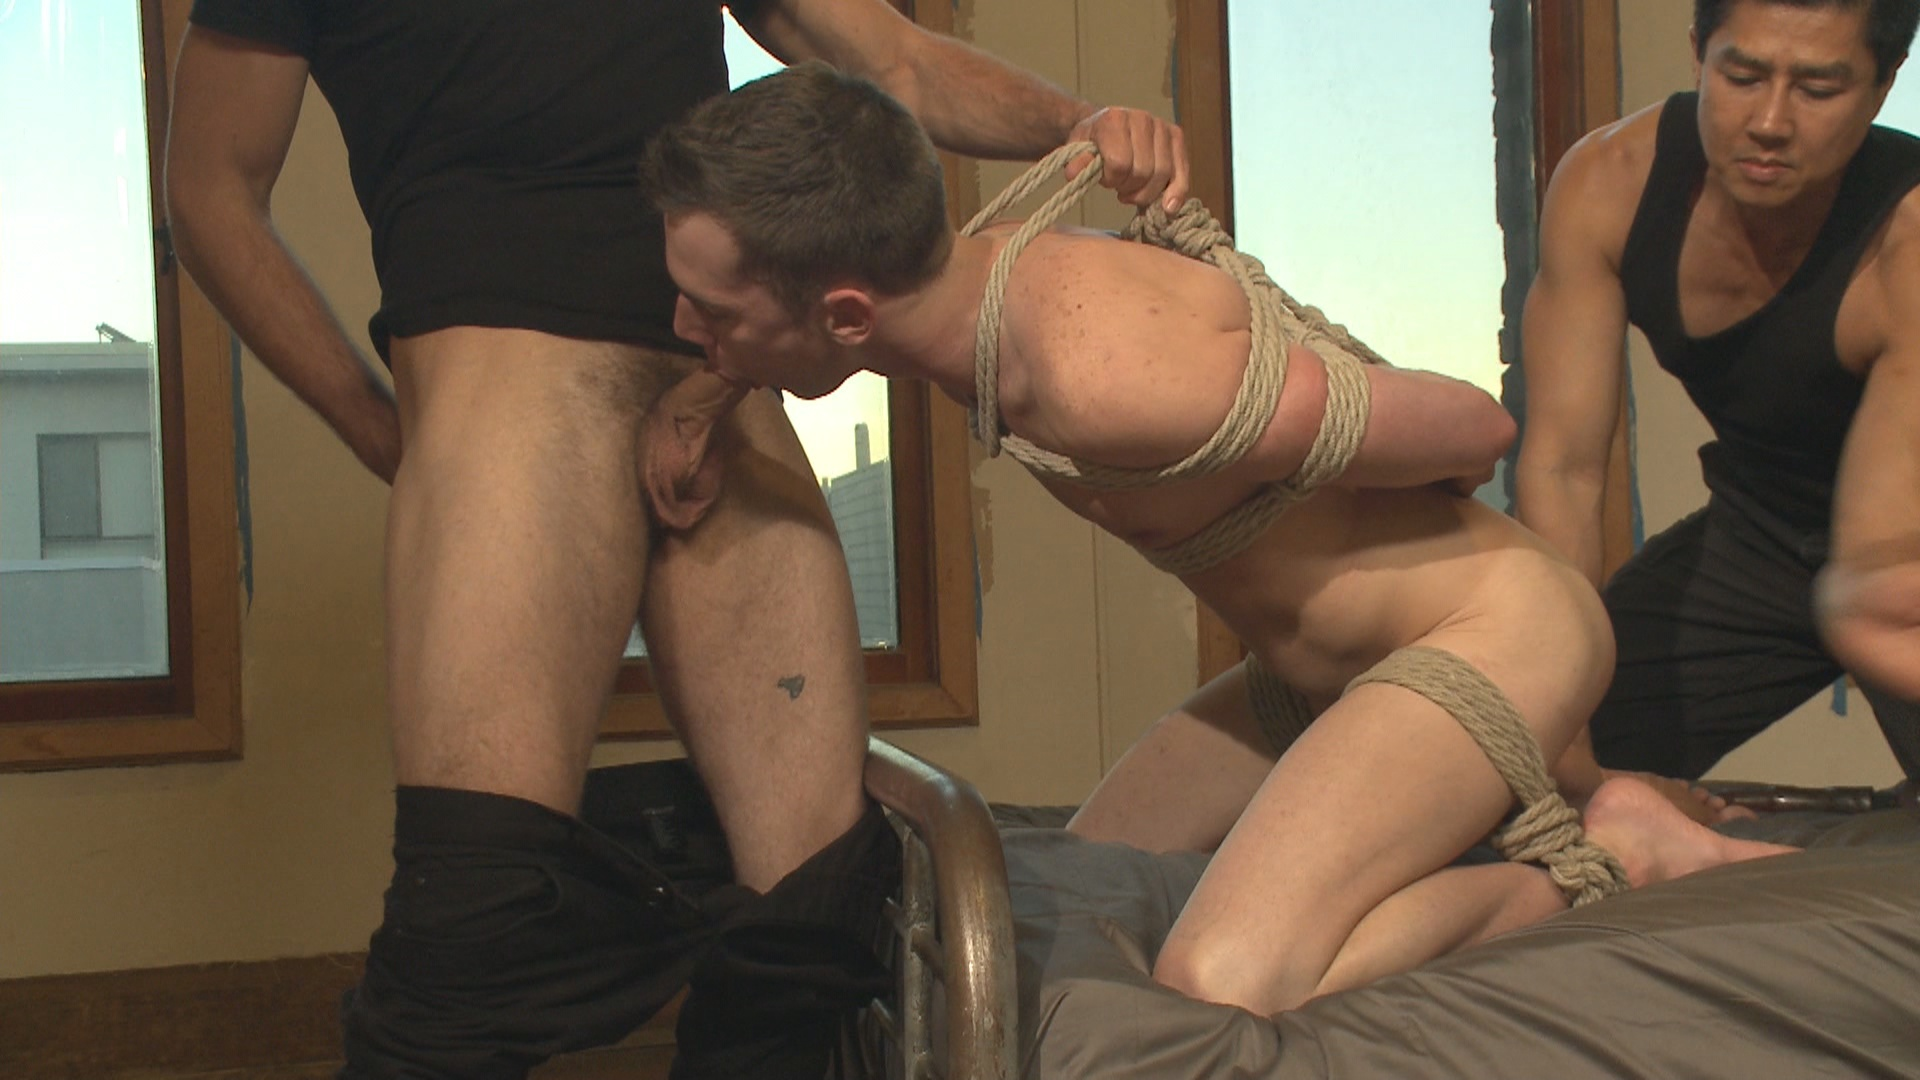 Men On Edge: Hung Stud Tied Up, Ass Fucked And Made To Swallow Cock Xvideo gay